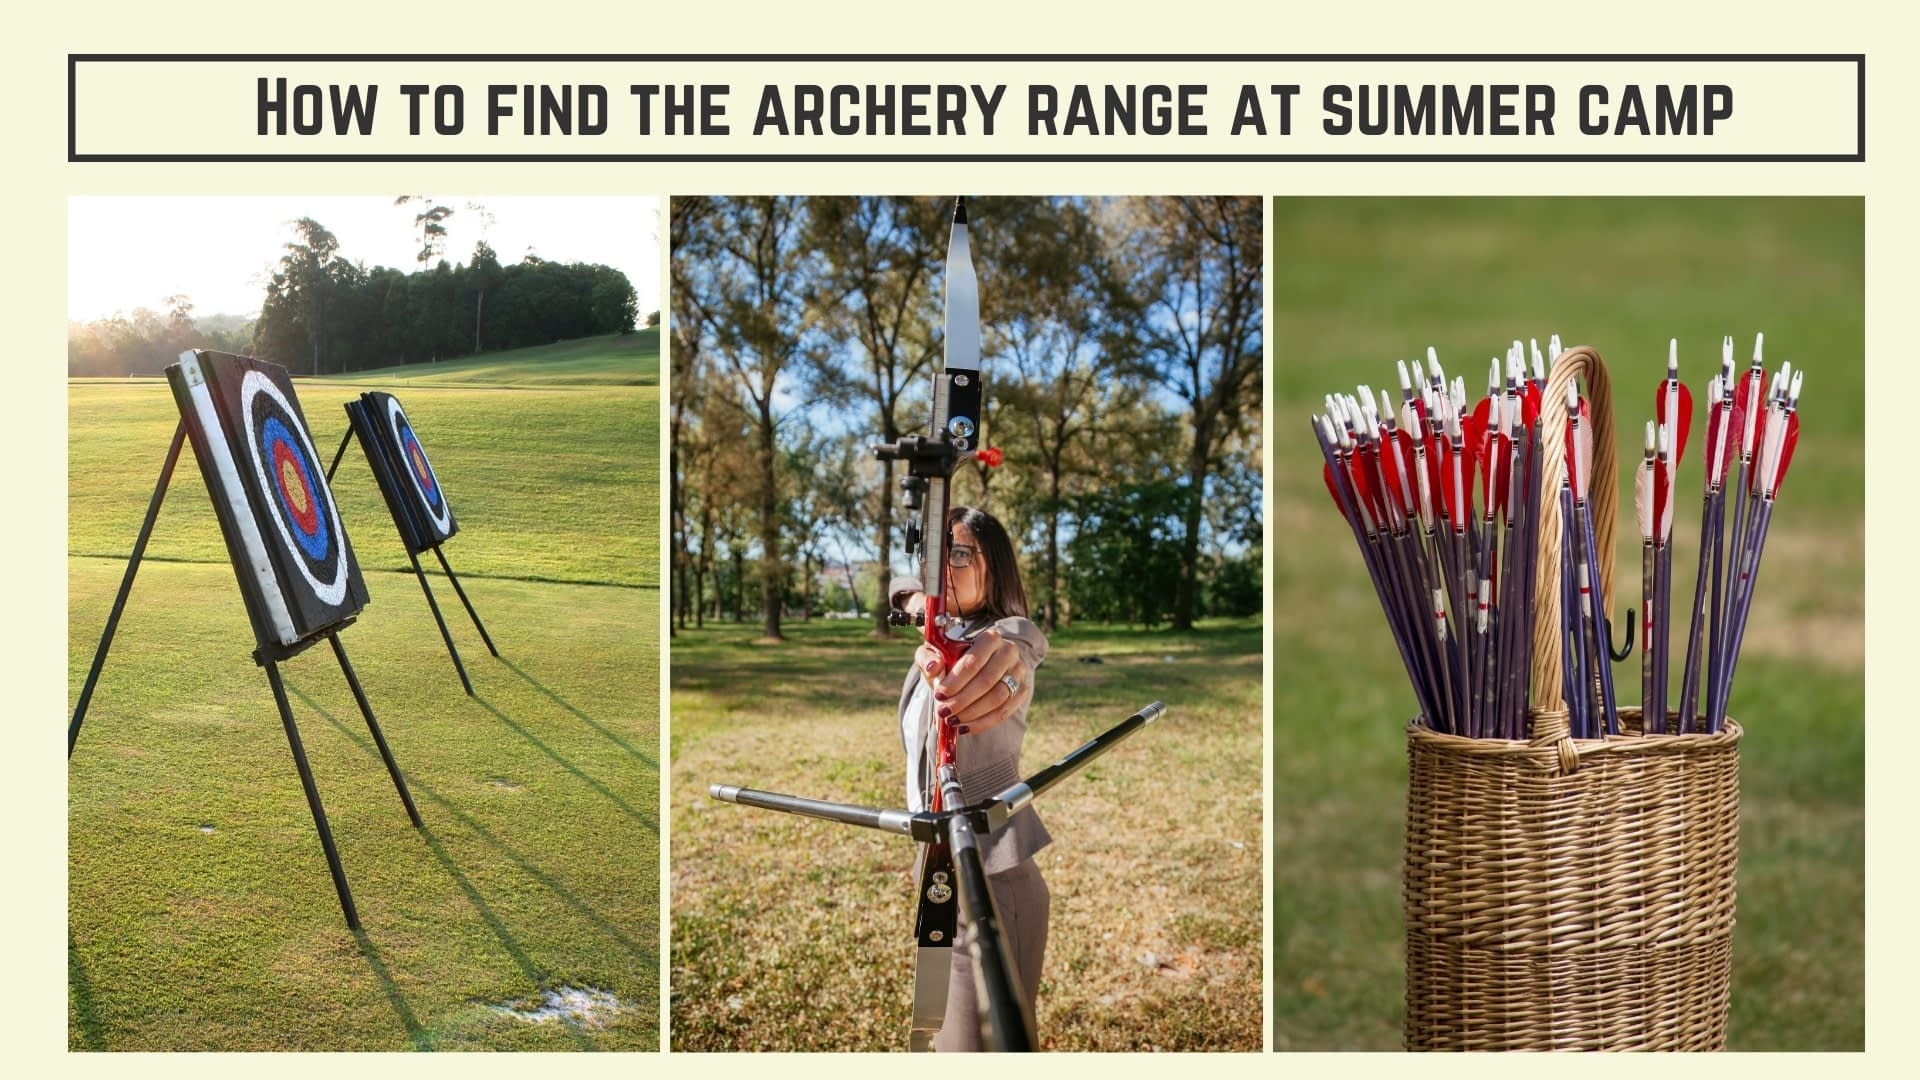 How to find the archery range at summer camp